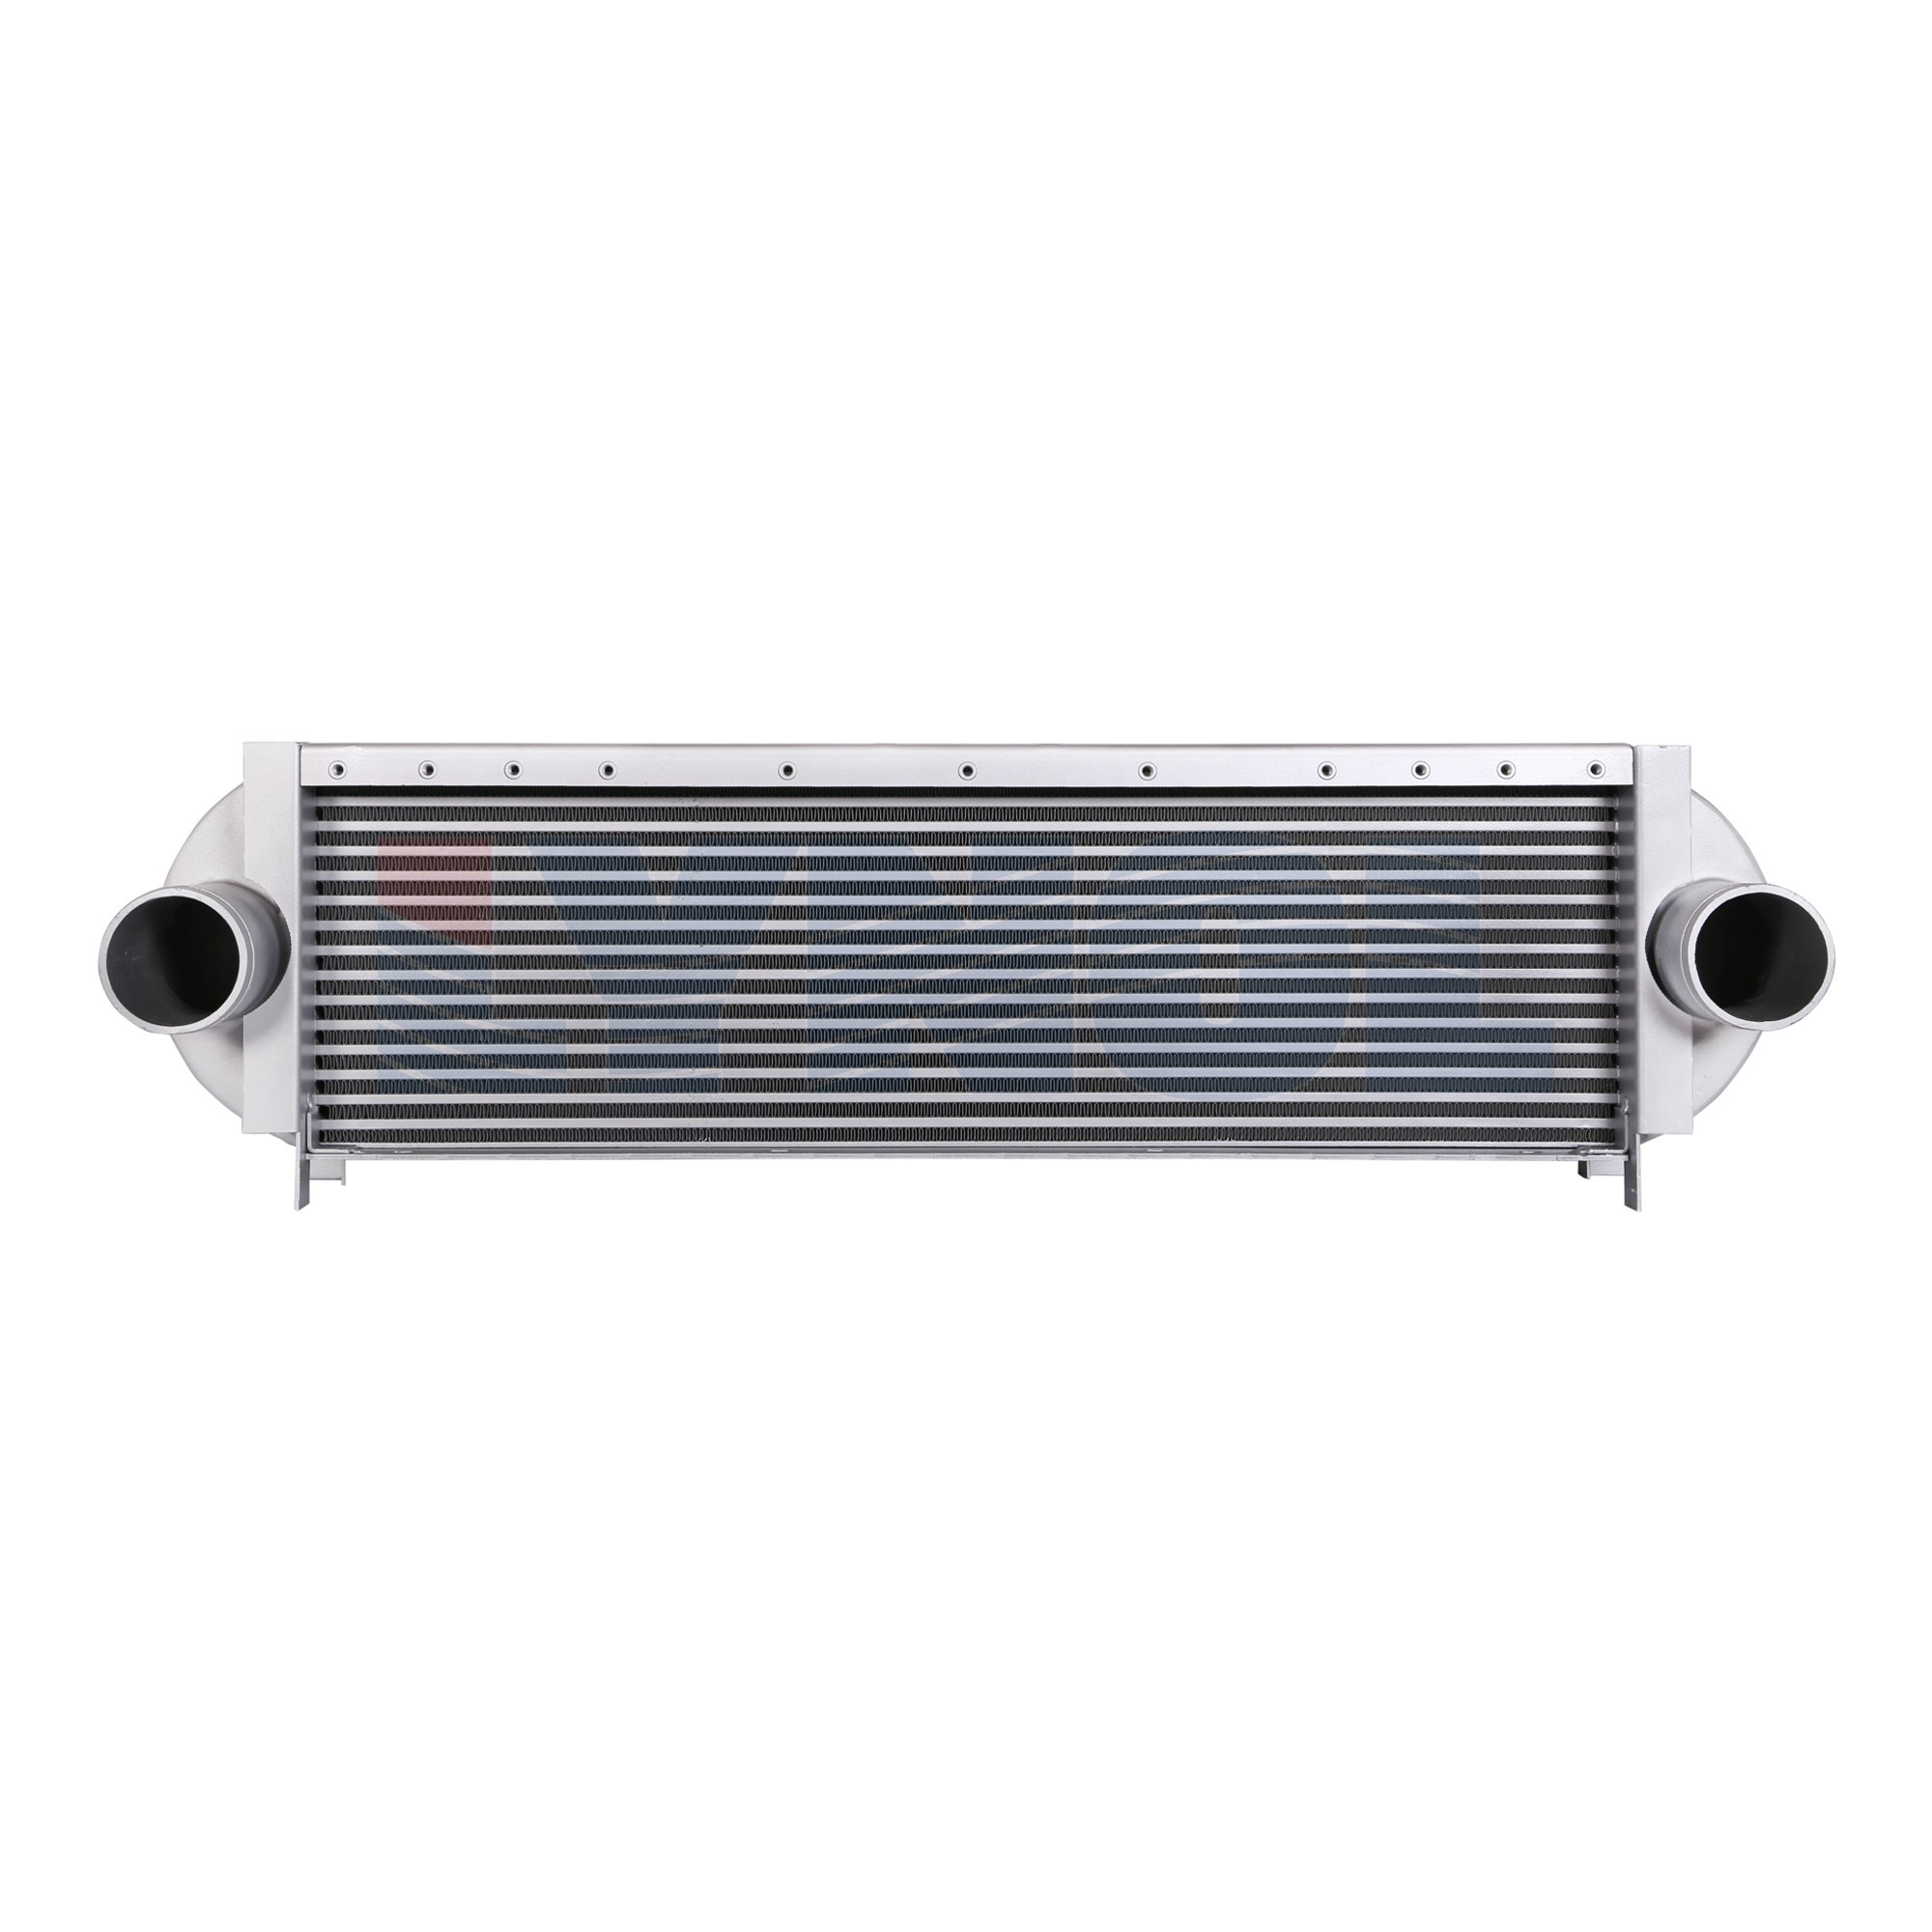 2414-001 - New Flyer Charge Air Cooler